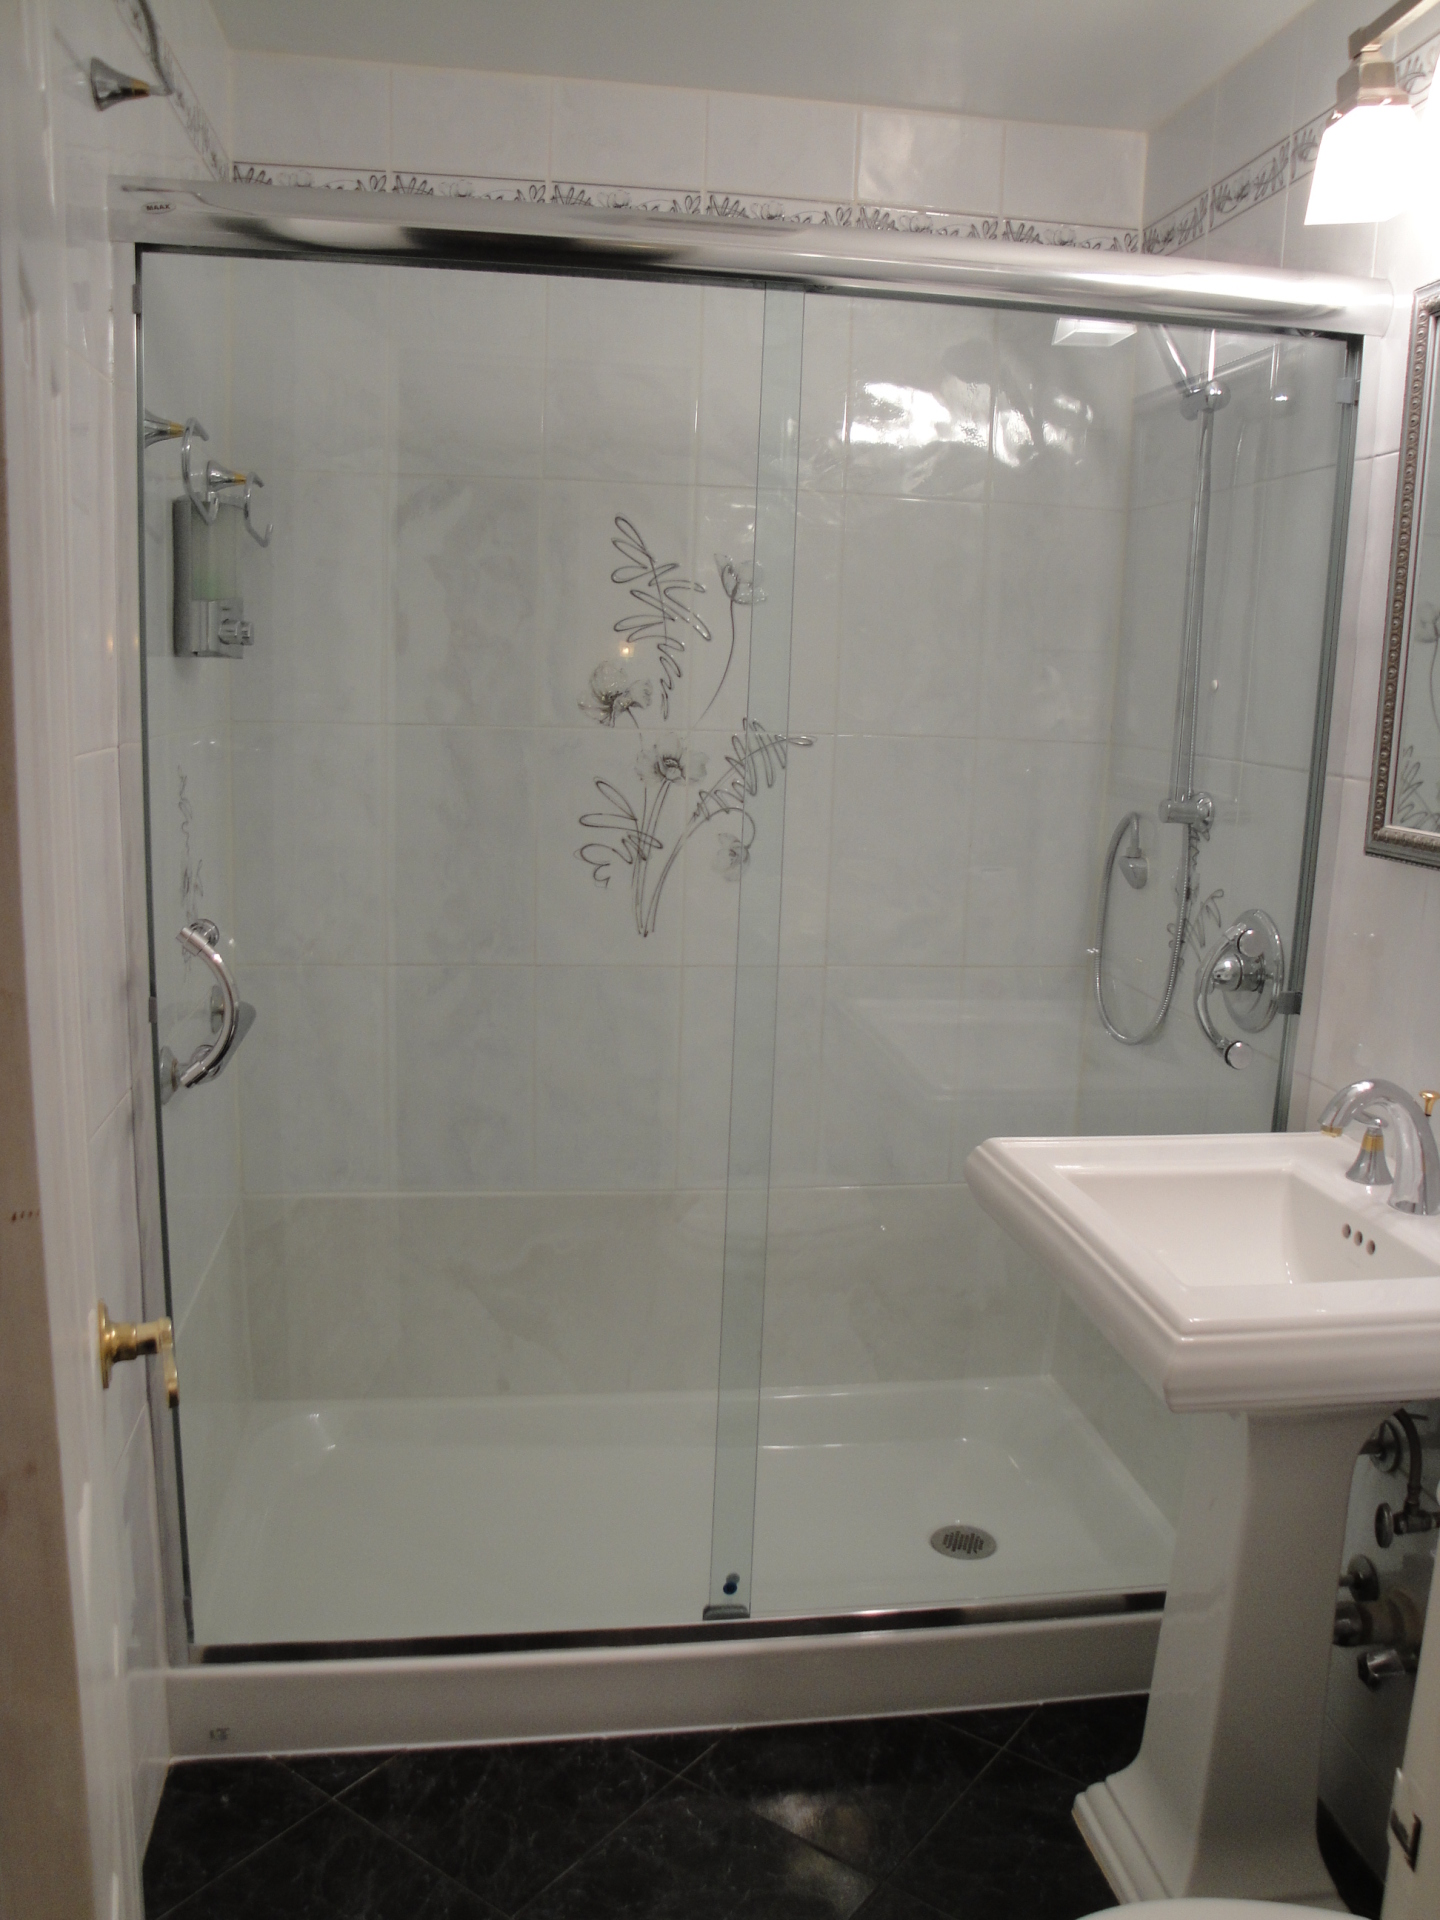 Conversion Tub To Walk-in Shower